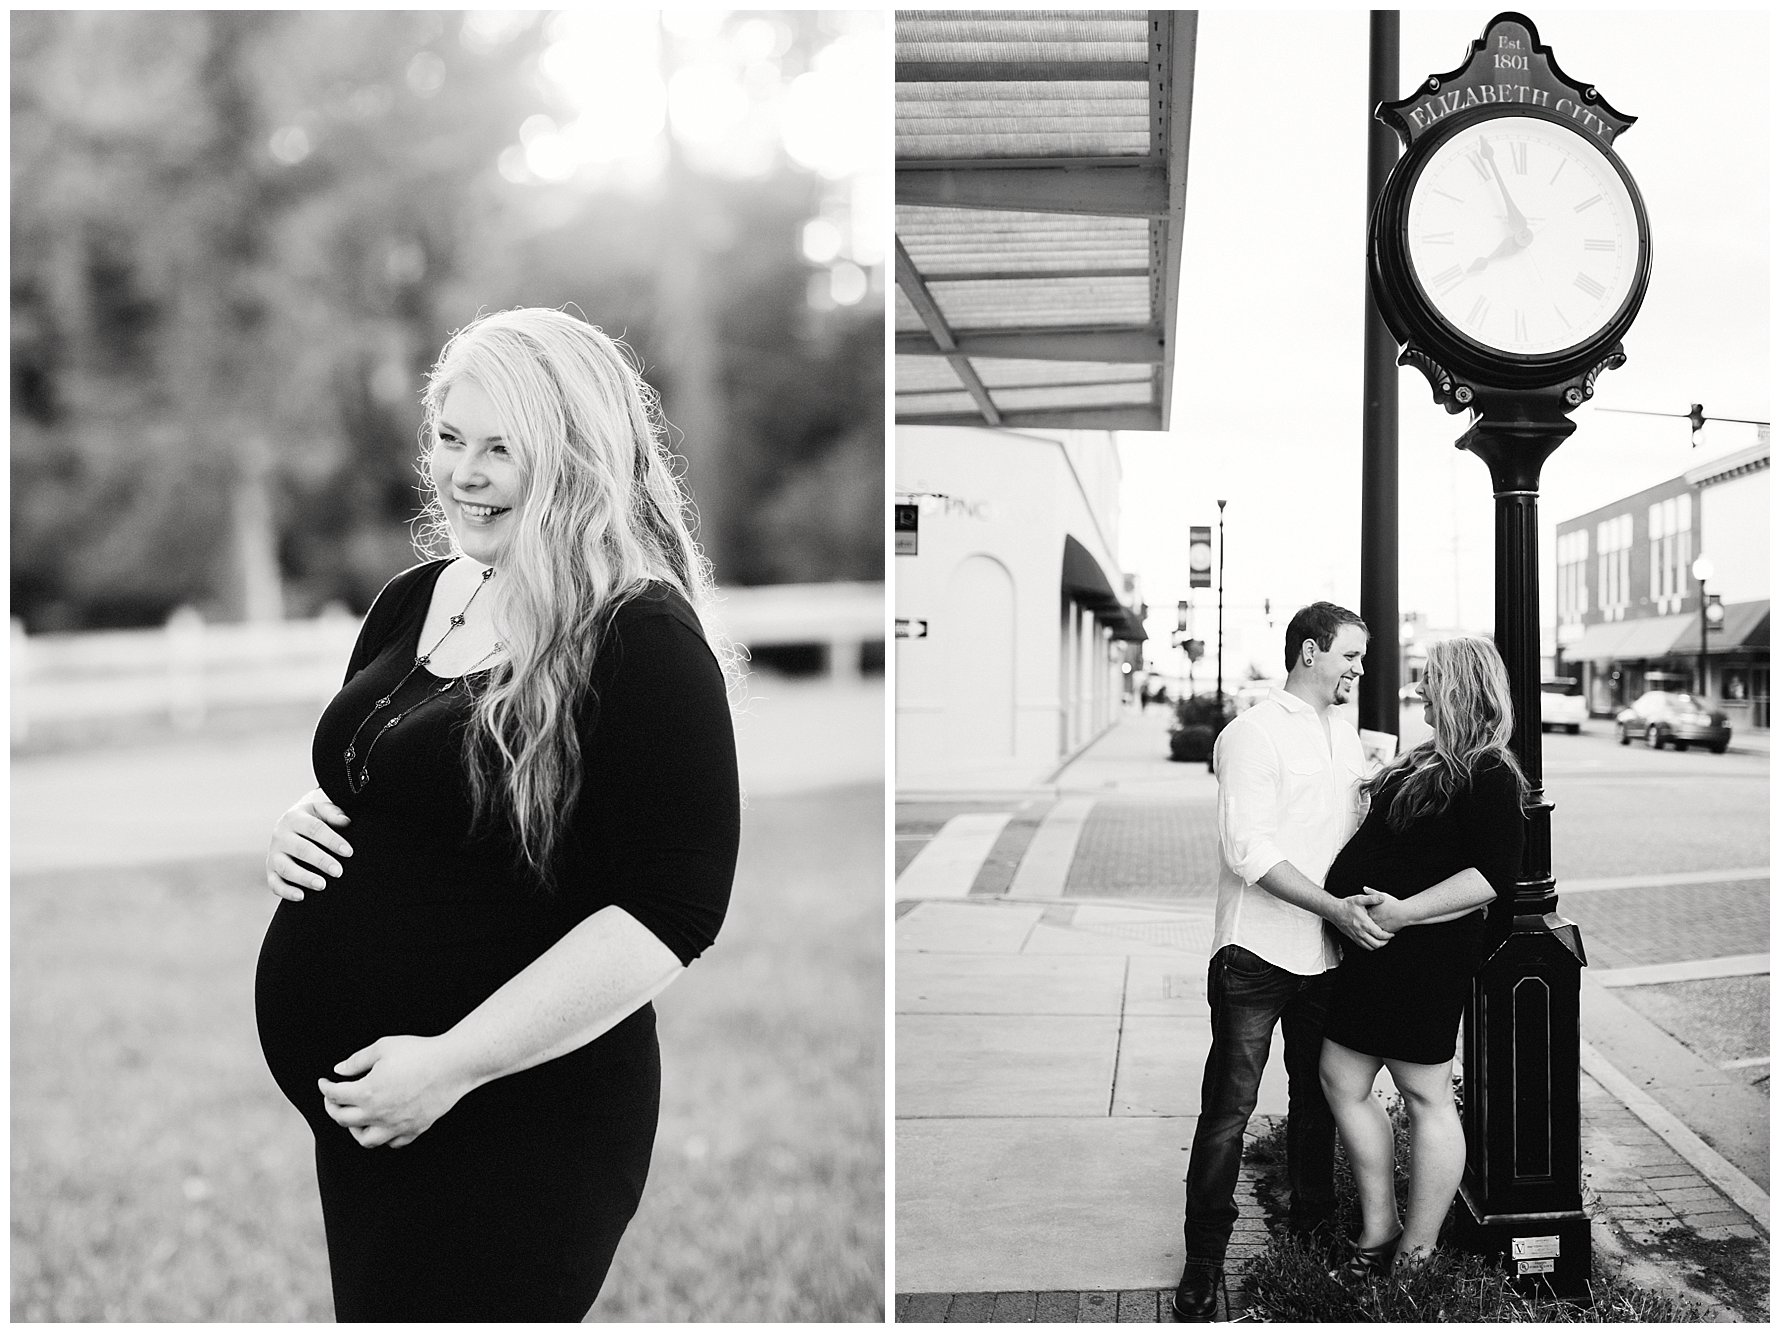 Elizabeth_City_NC_Maternity_Photography_Downtown_Waterfront_0006